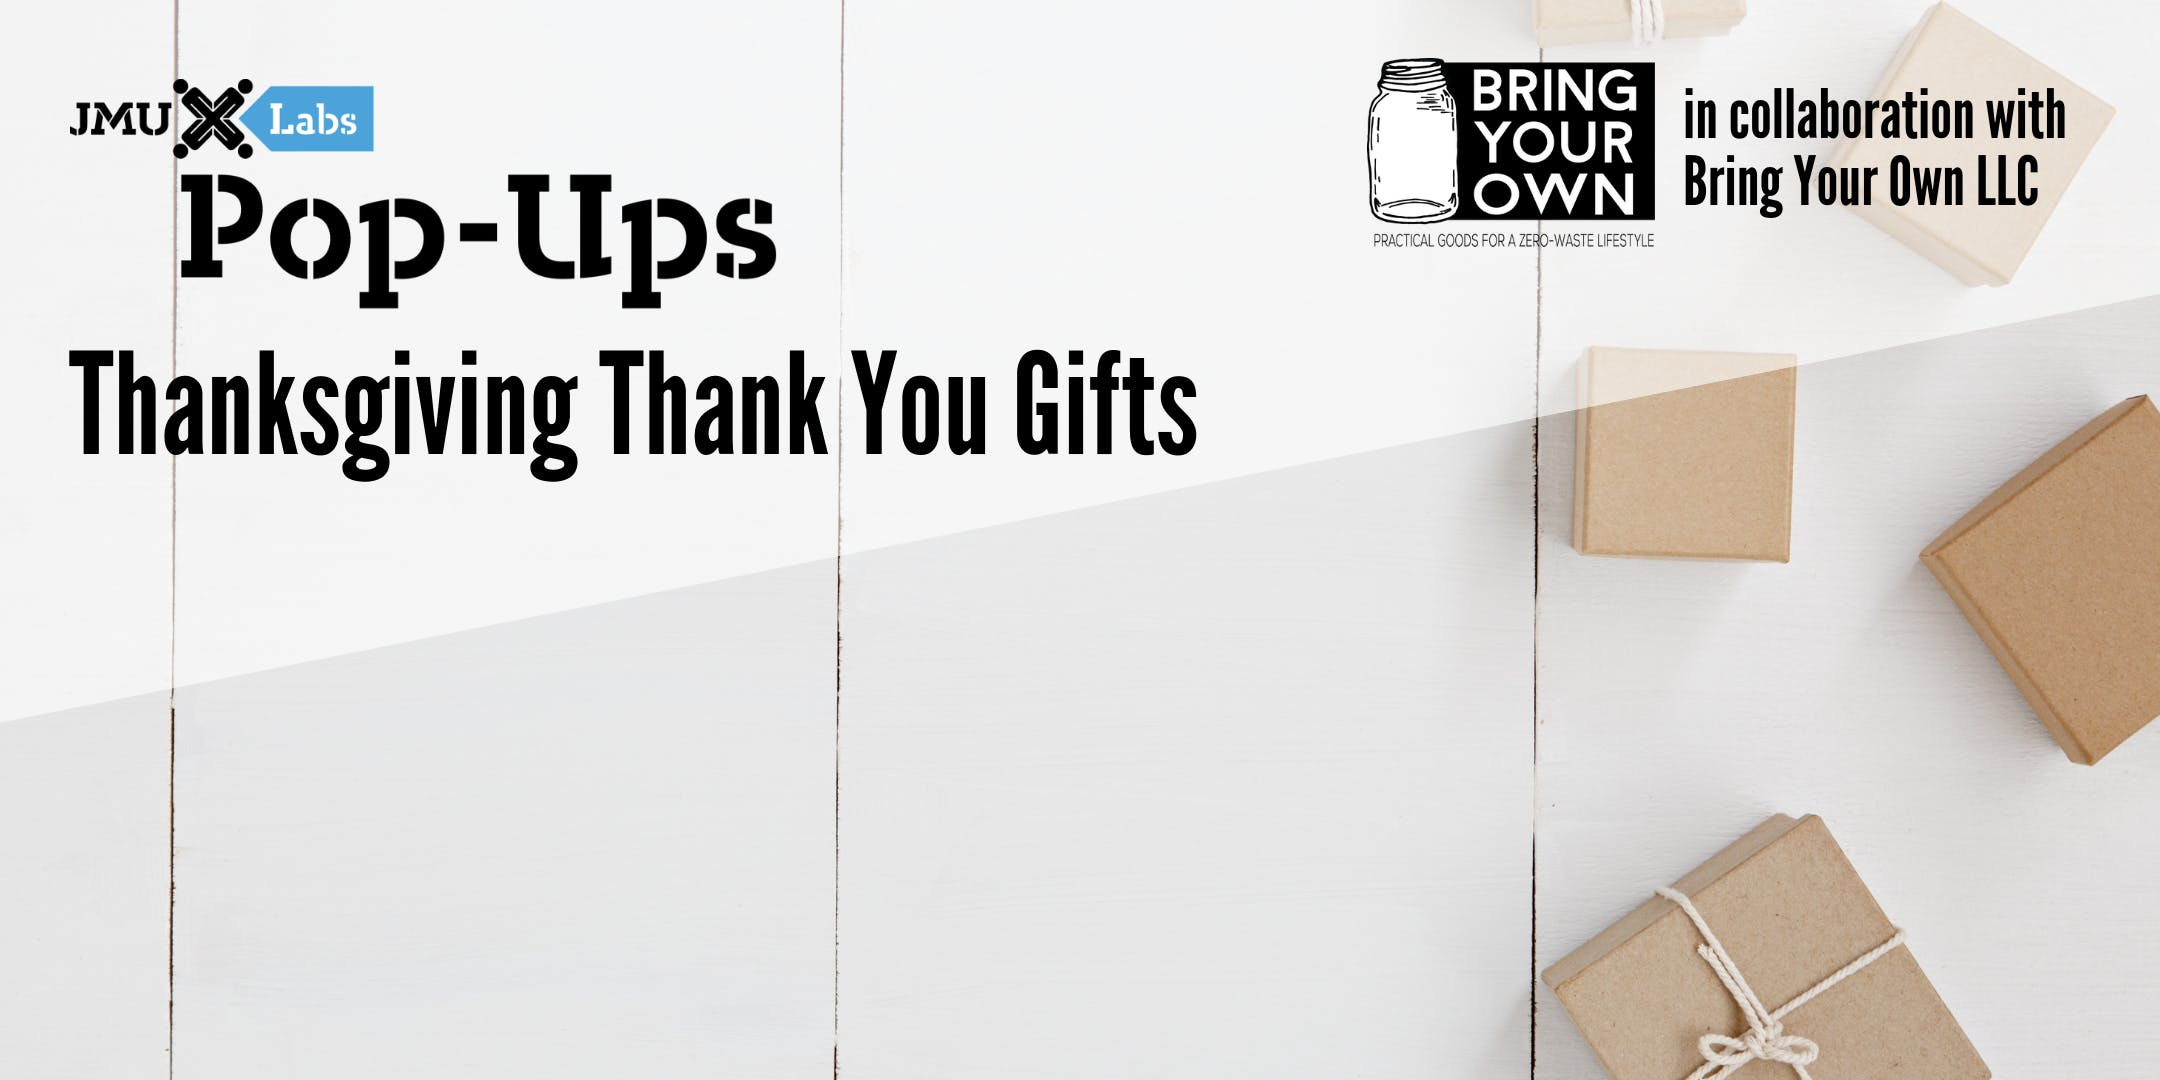 Pop-Up Workshop: Thanksgiving Thank You Gifts with Bring Your Own LLC